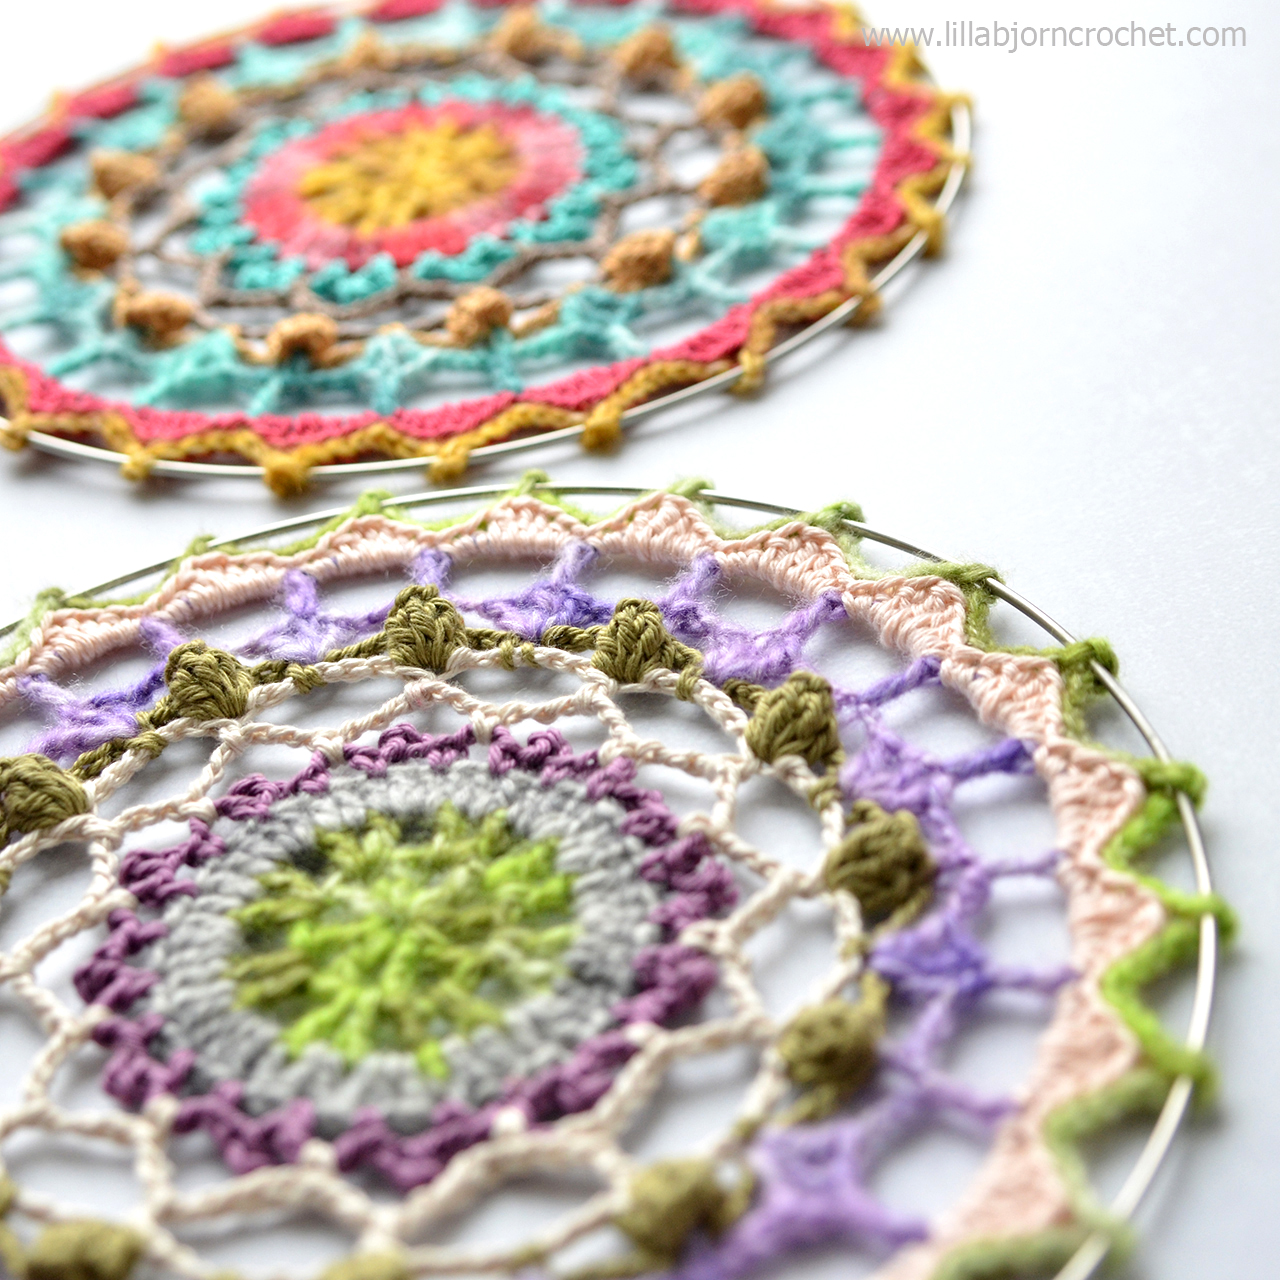 Spirit Mandala wall hanging - FREE crochet pattern by www.lillabjorncrochet.com